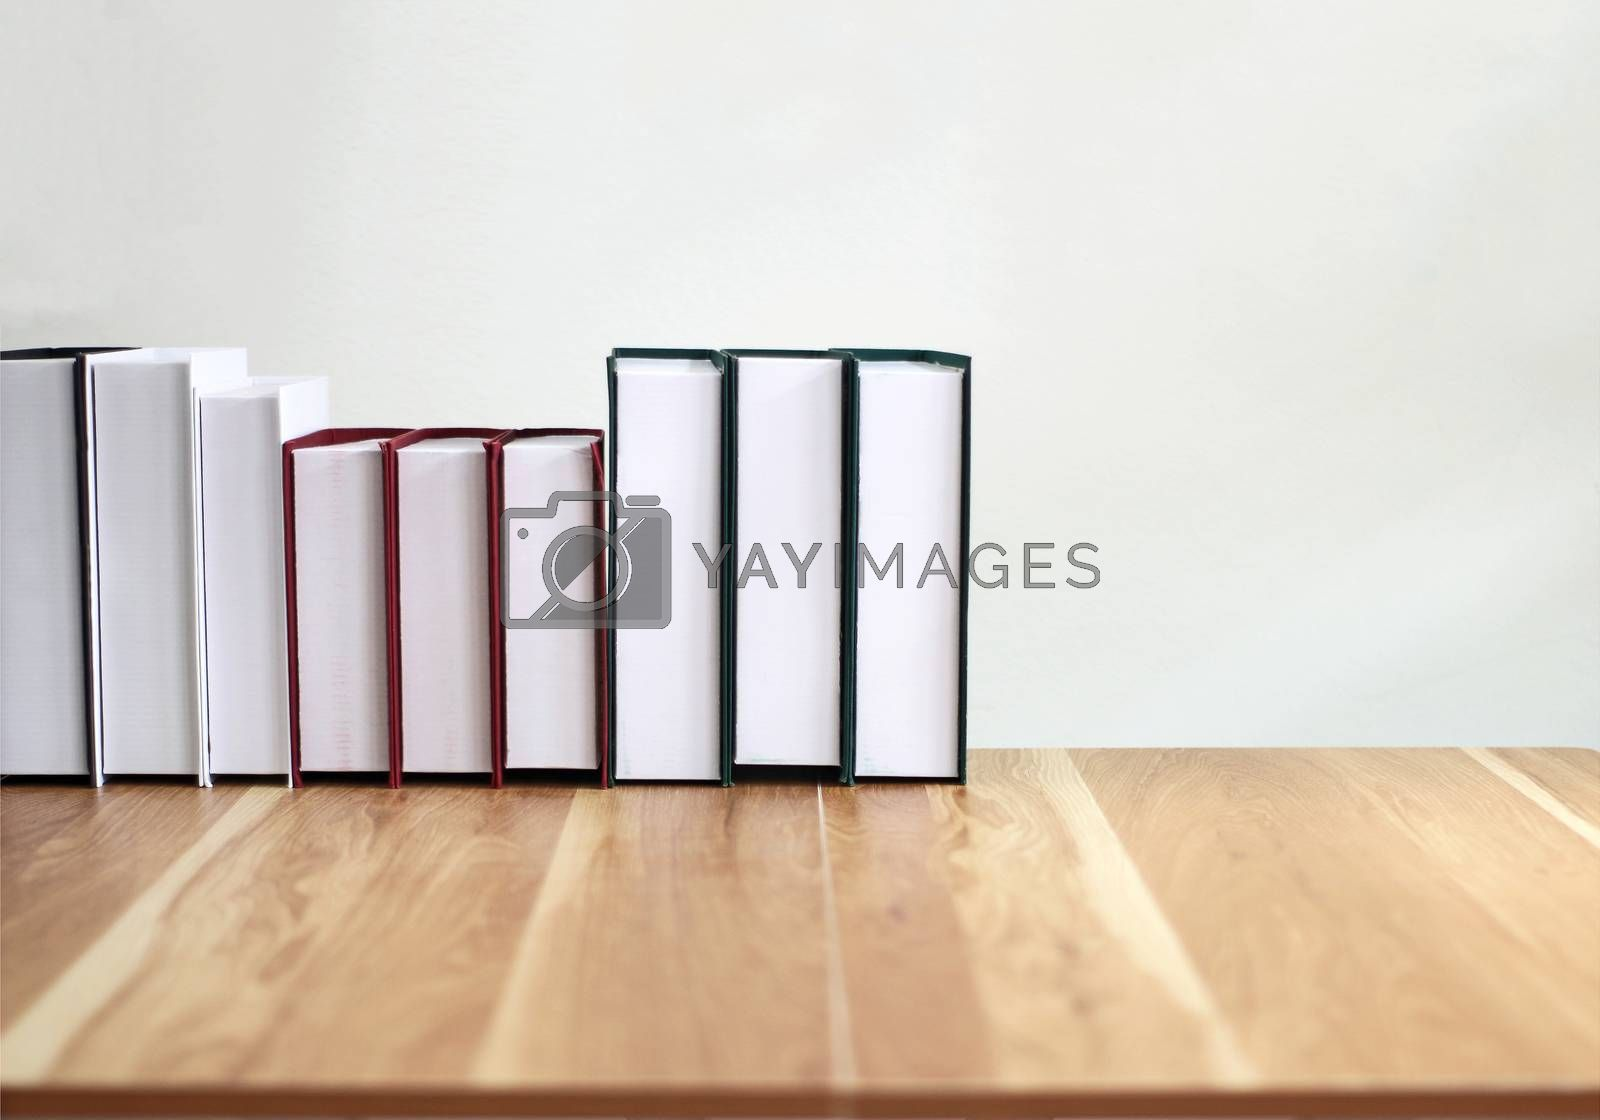 new books on a wooden table